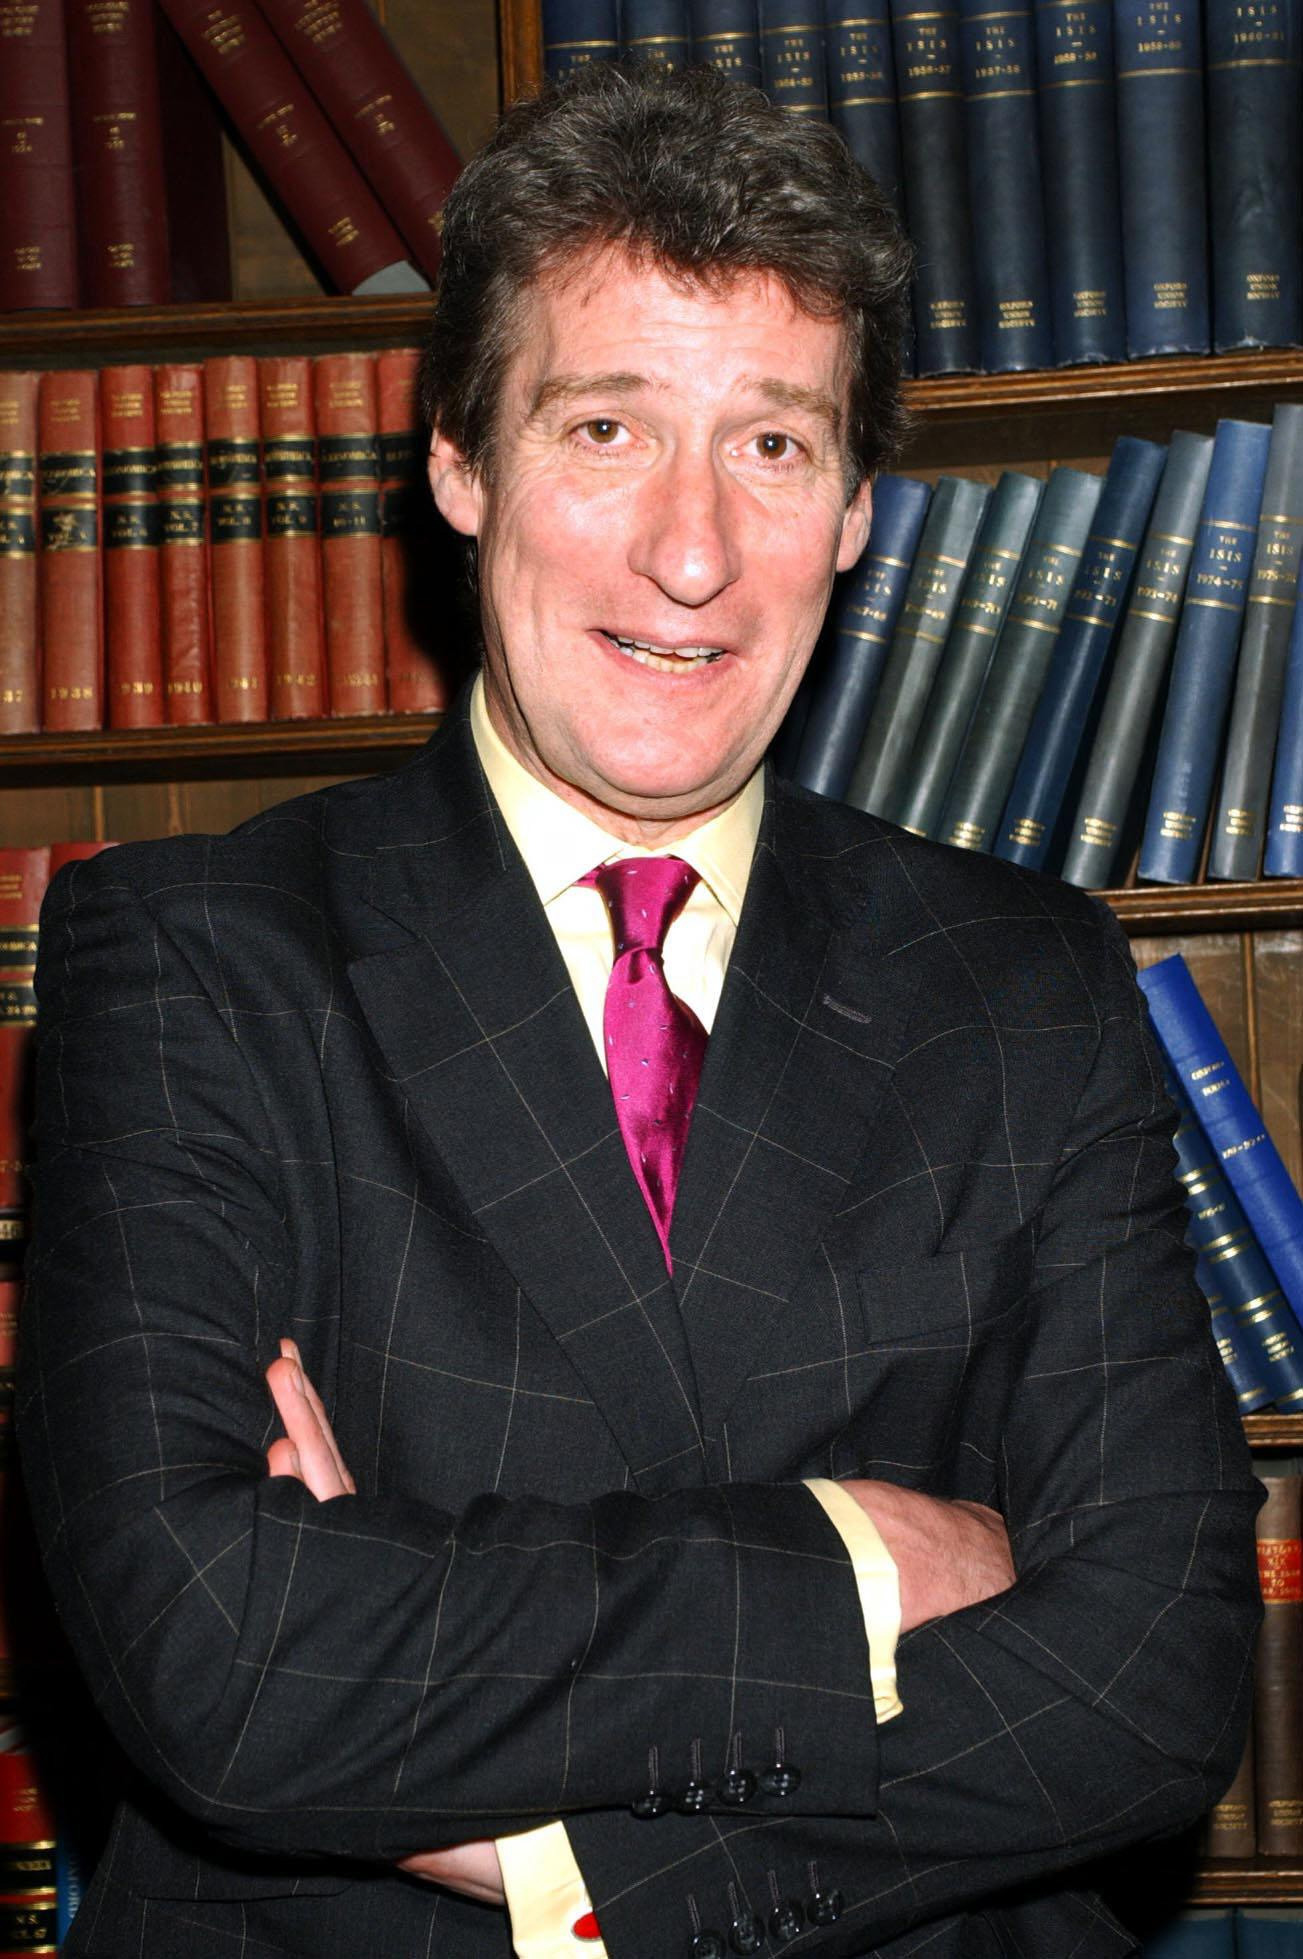 Paxman says M&S underwear is just pants